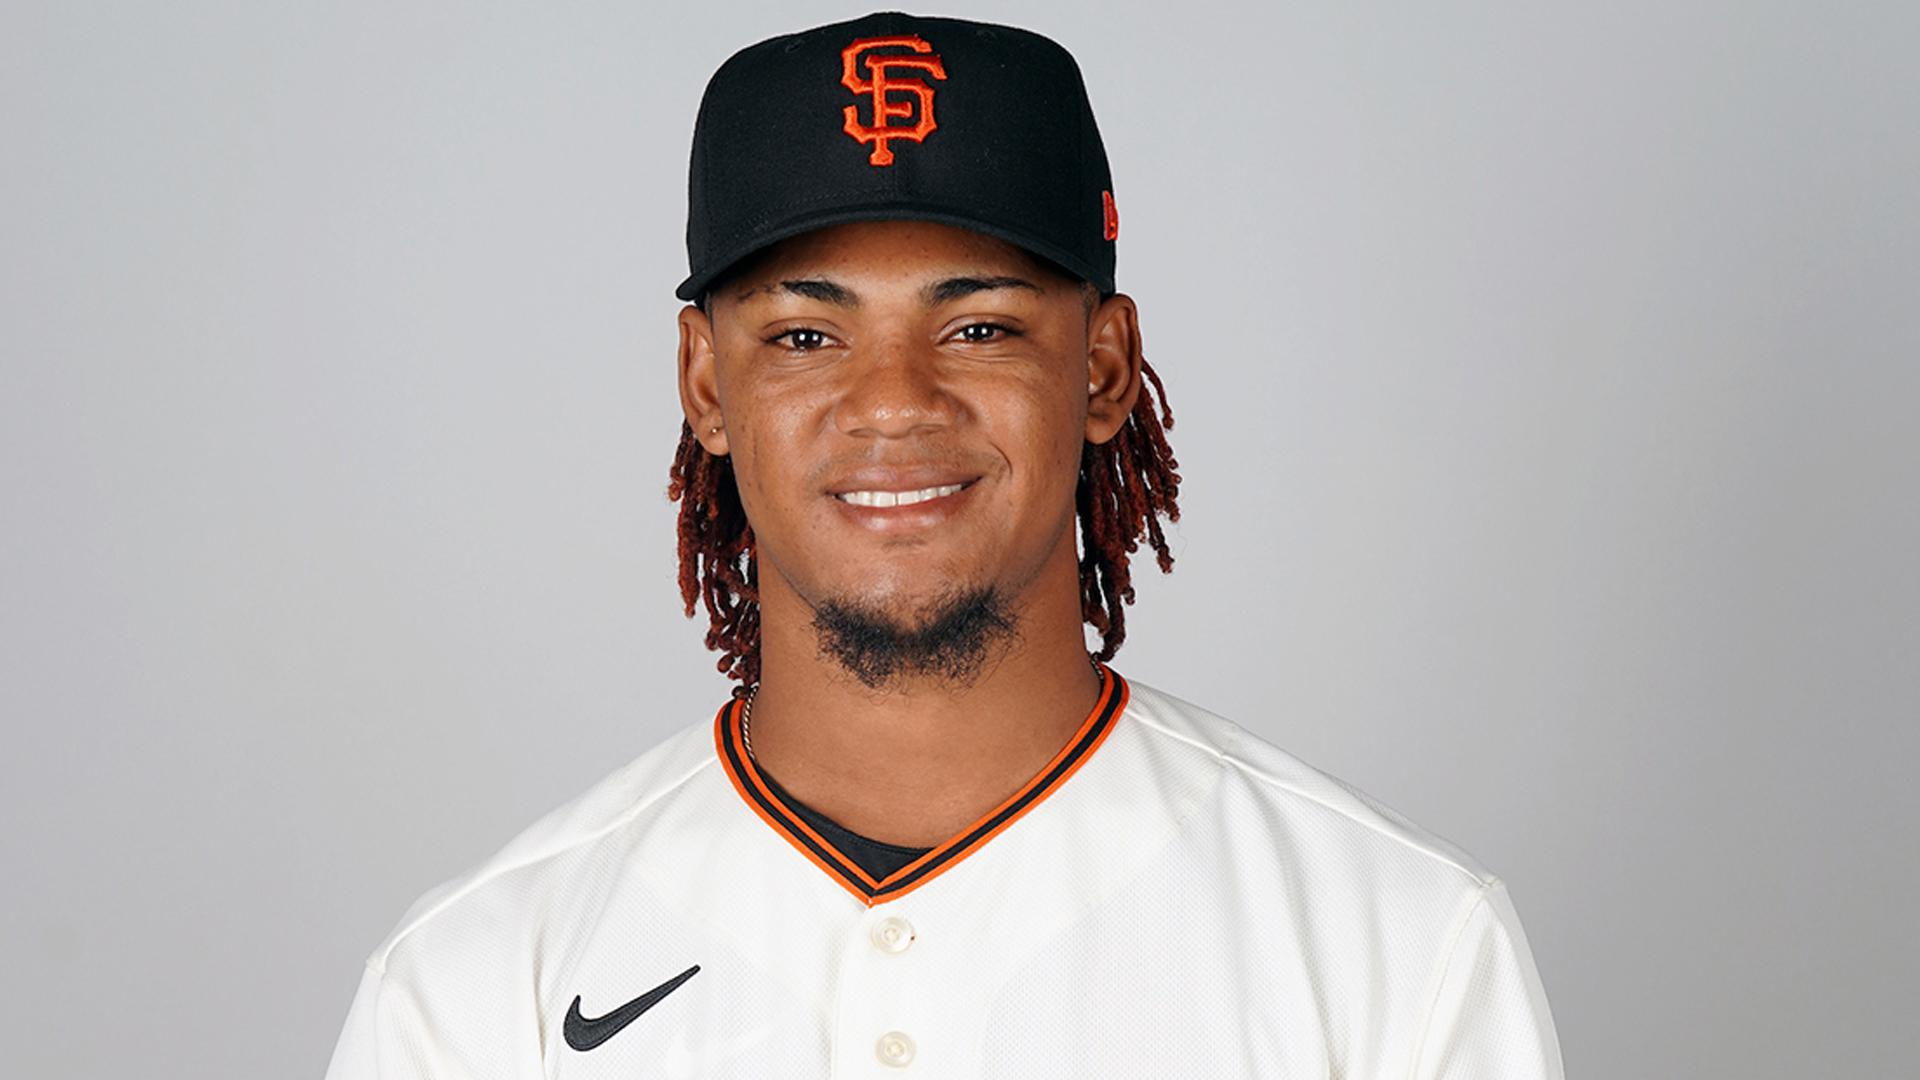 giants-call-up-camilo-doval,-hard-throwing-right-hander,-for-debut